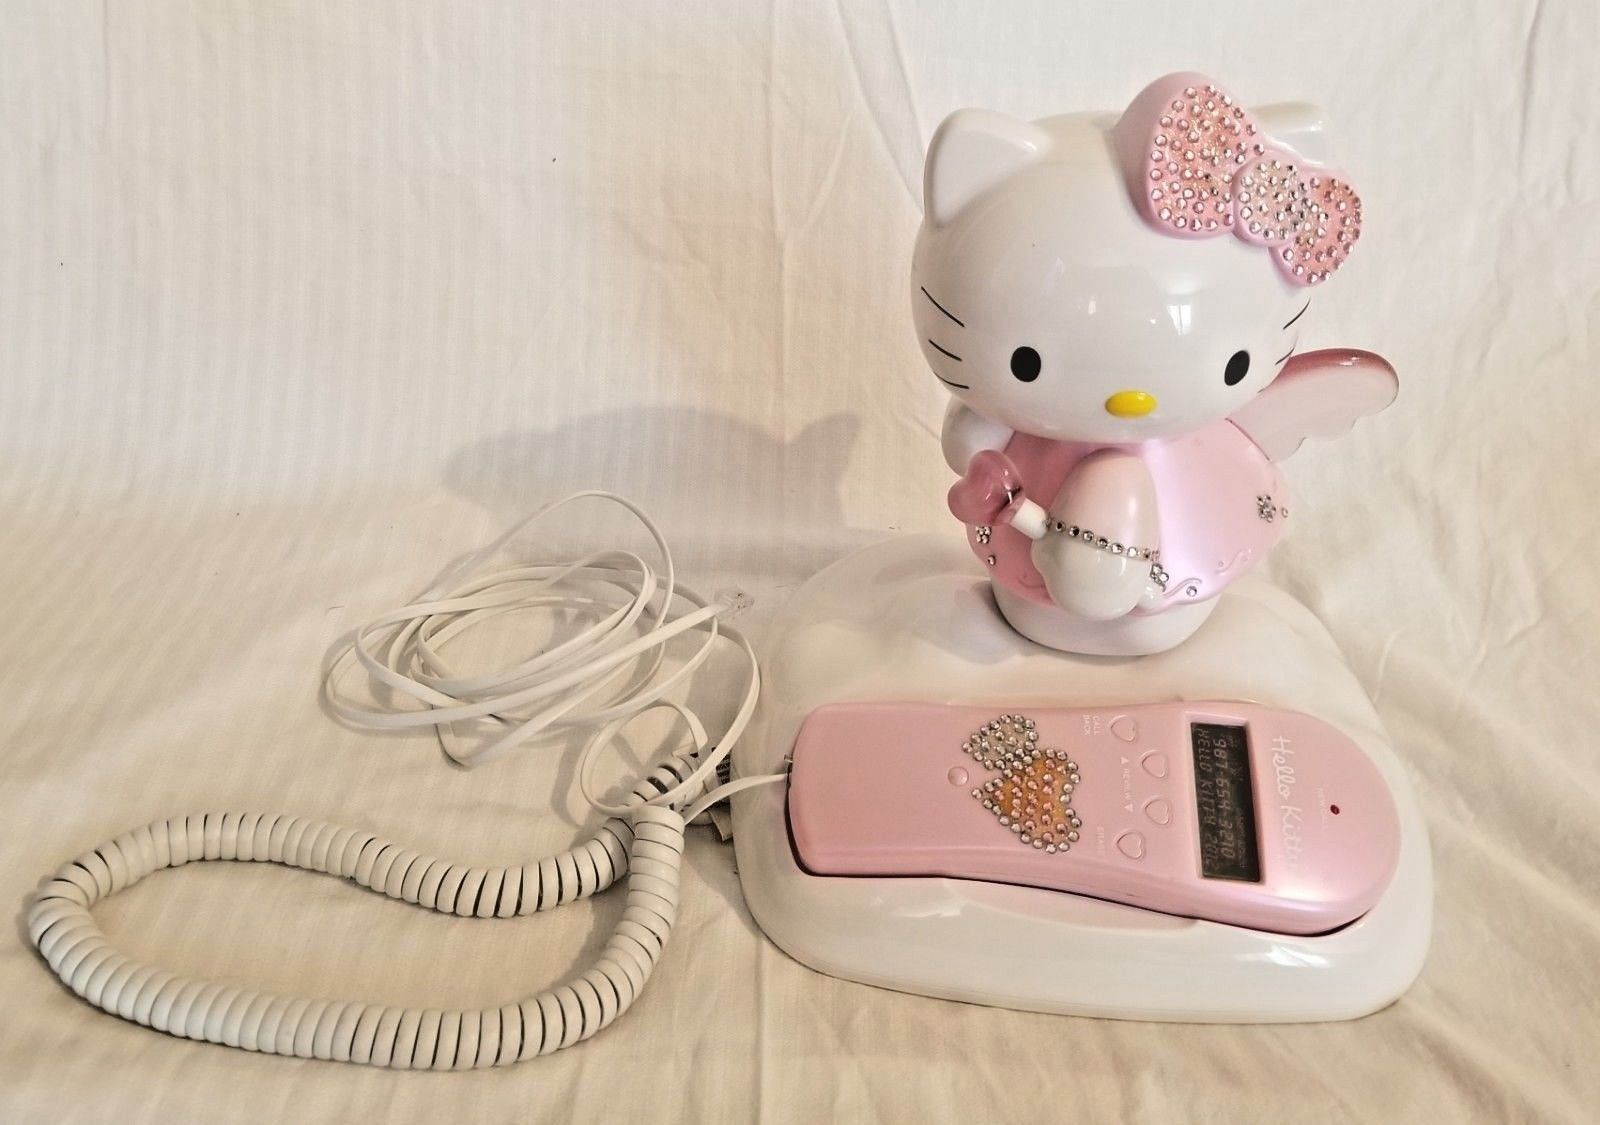 Hello Kitty Home Telephone With Caller ID,Lights up..